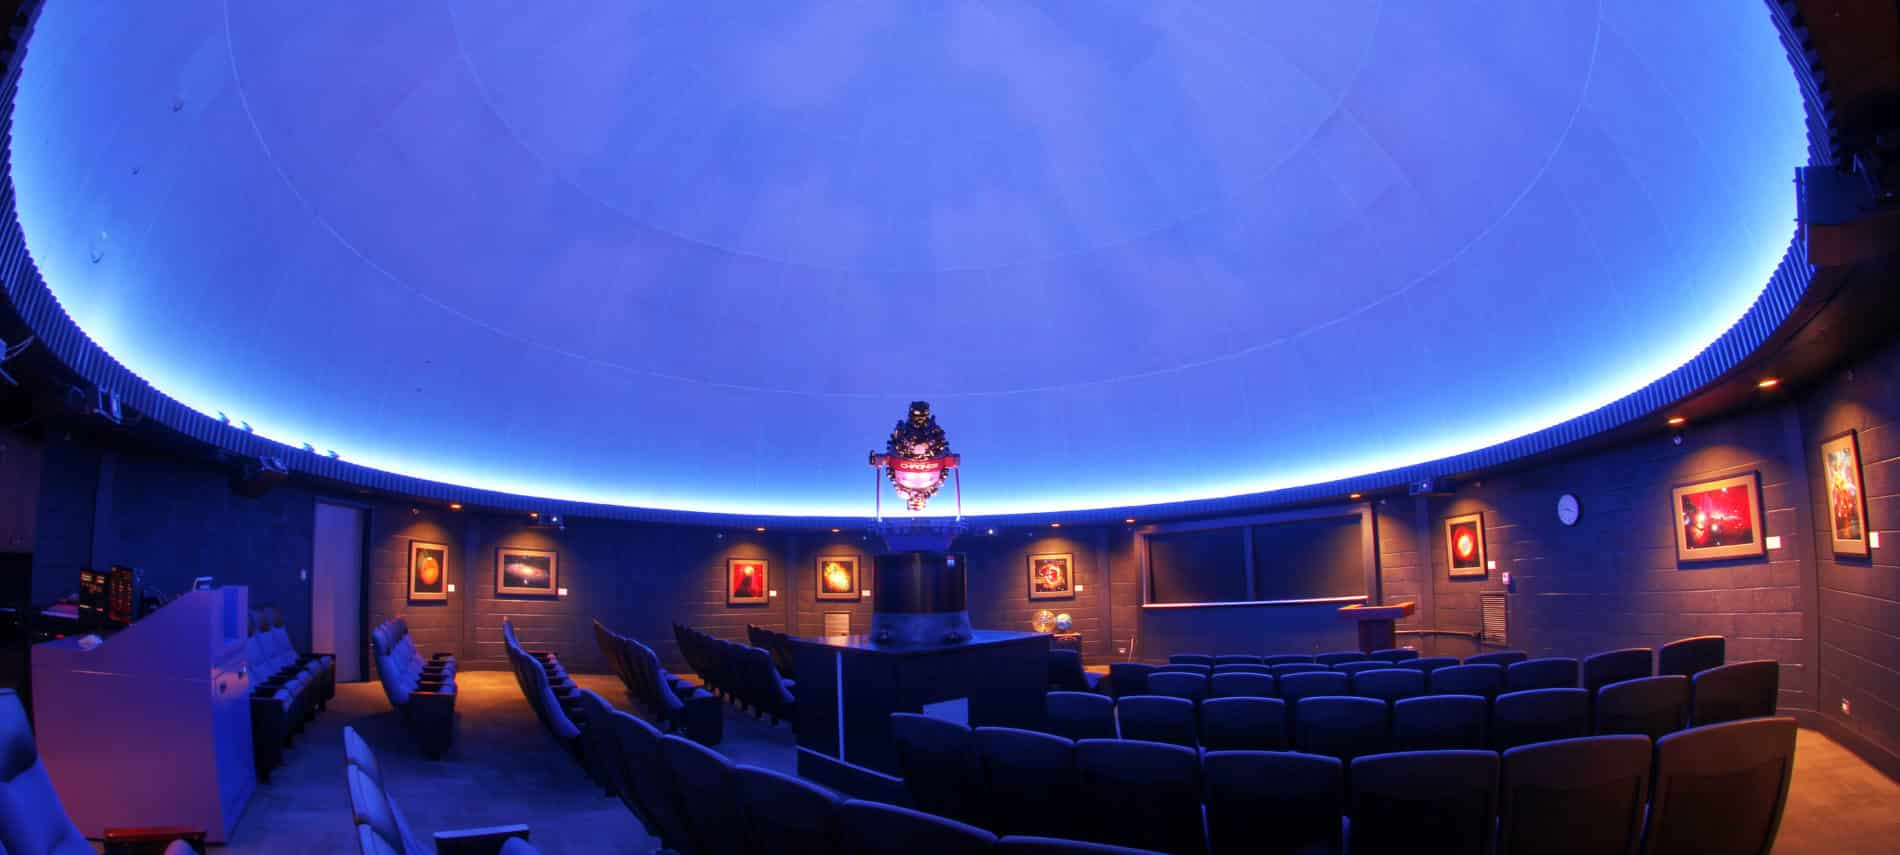 Empty theater planetarium seats and glowing, oblong sky/screen above.